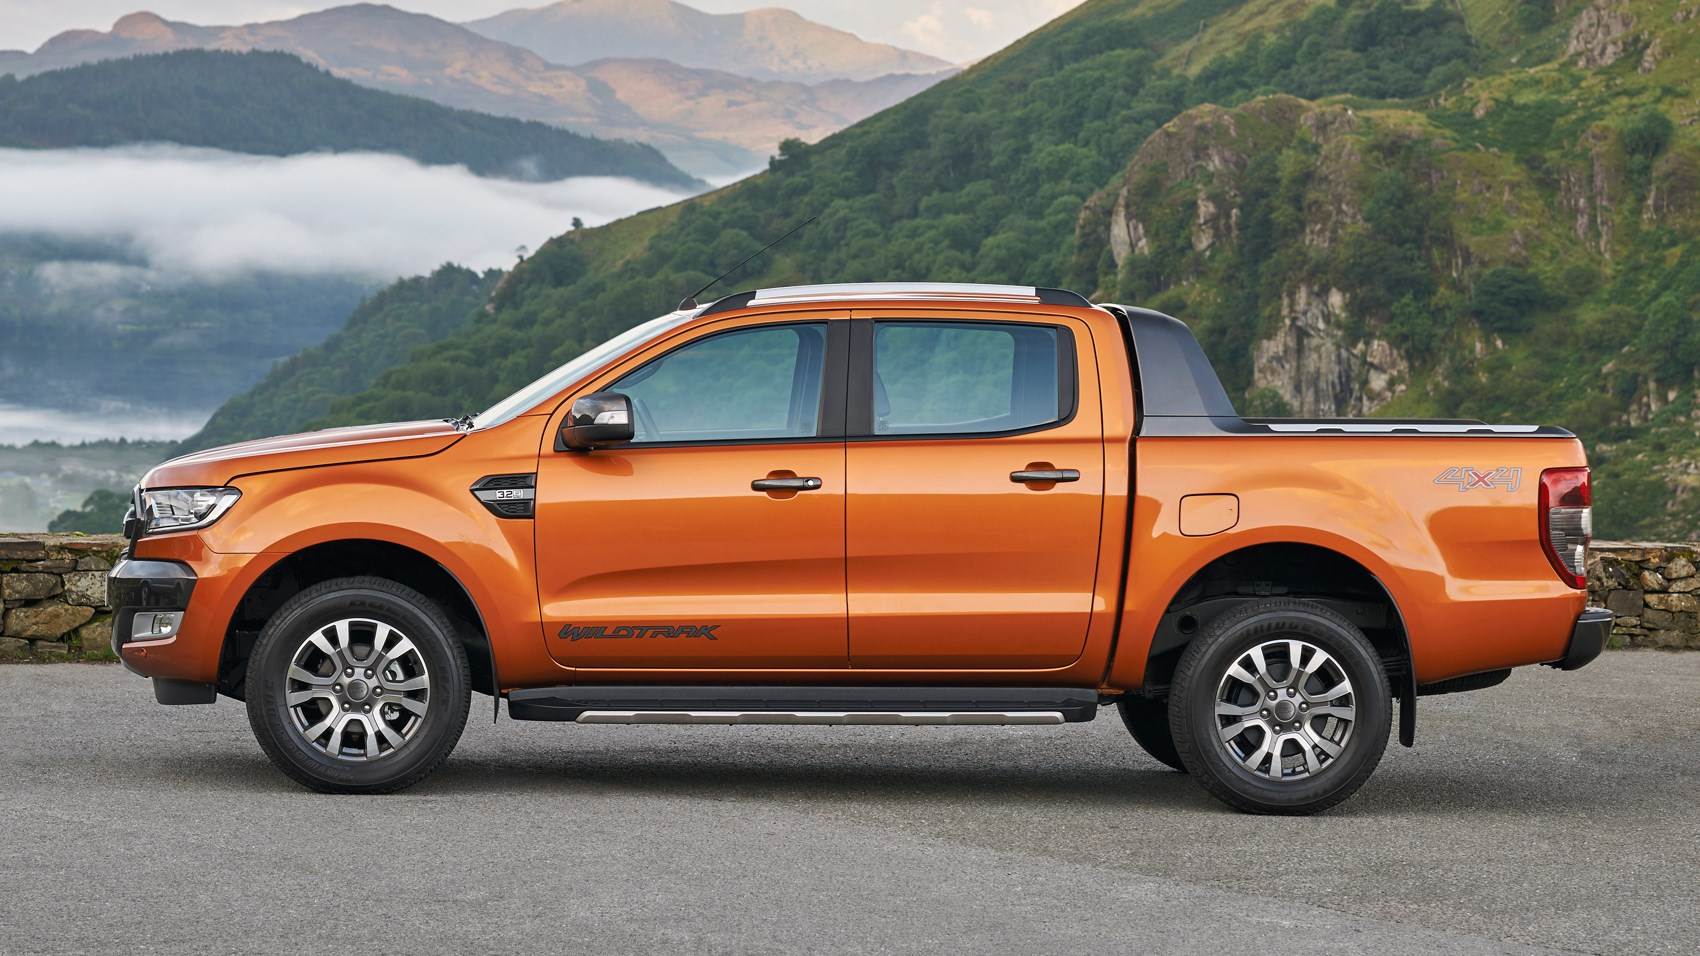 khi-'vua-ban-tai'-ford-ranger-that-the